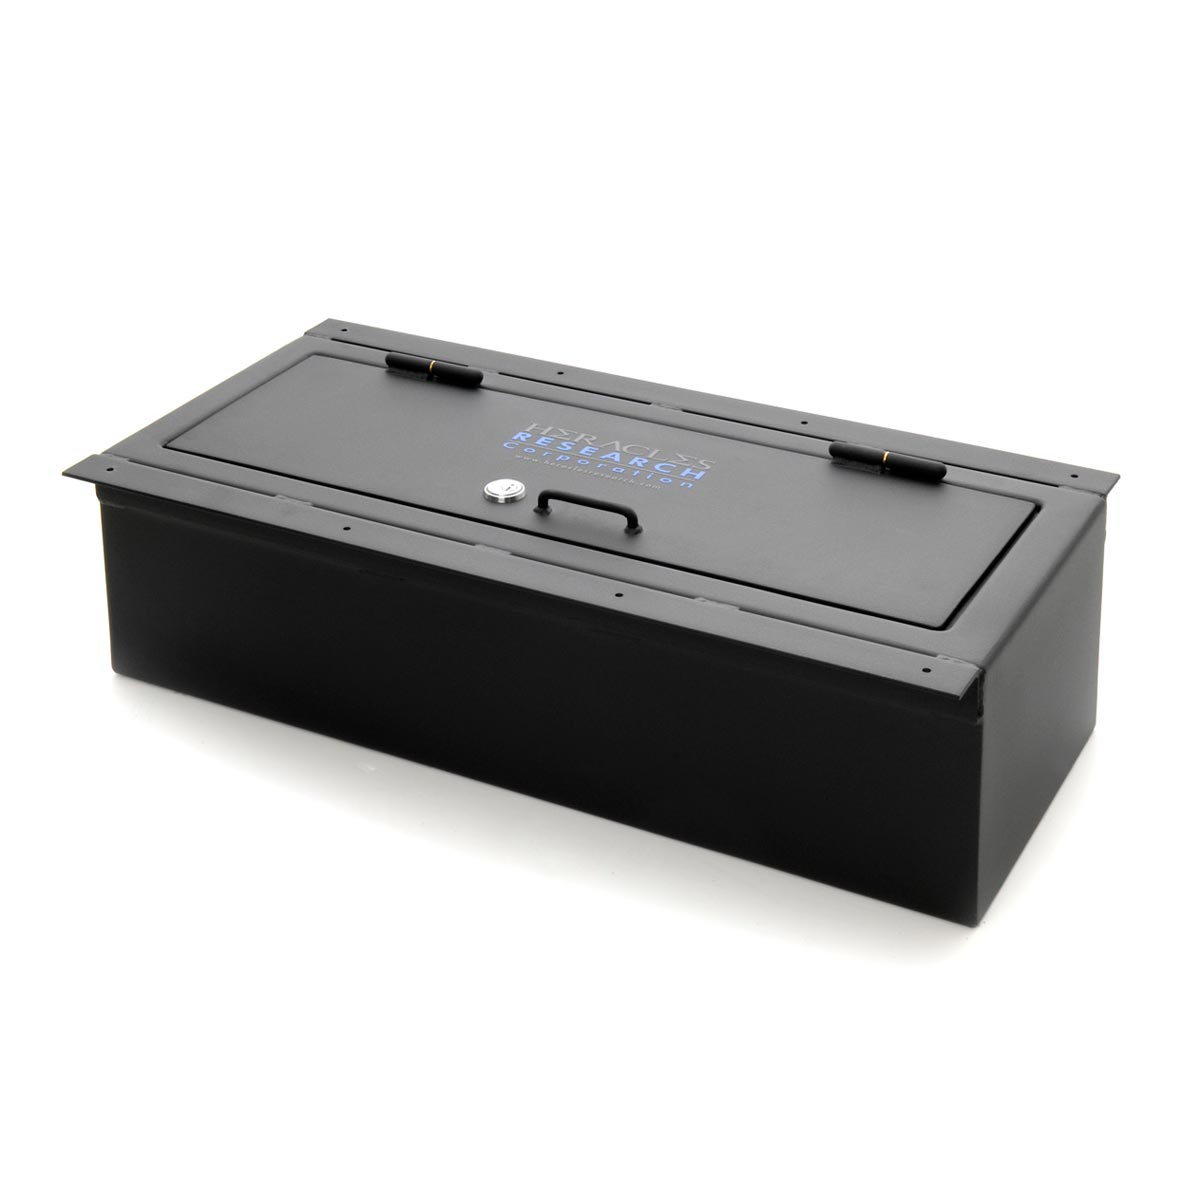 Bedbunker concealed floor wall safe steel or stainless for Hidden floor safe